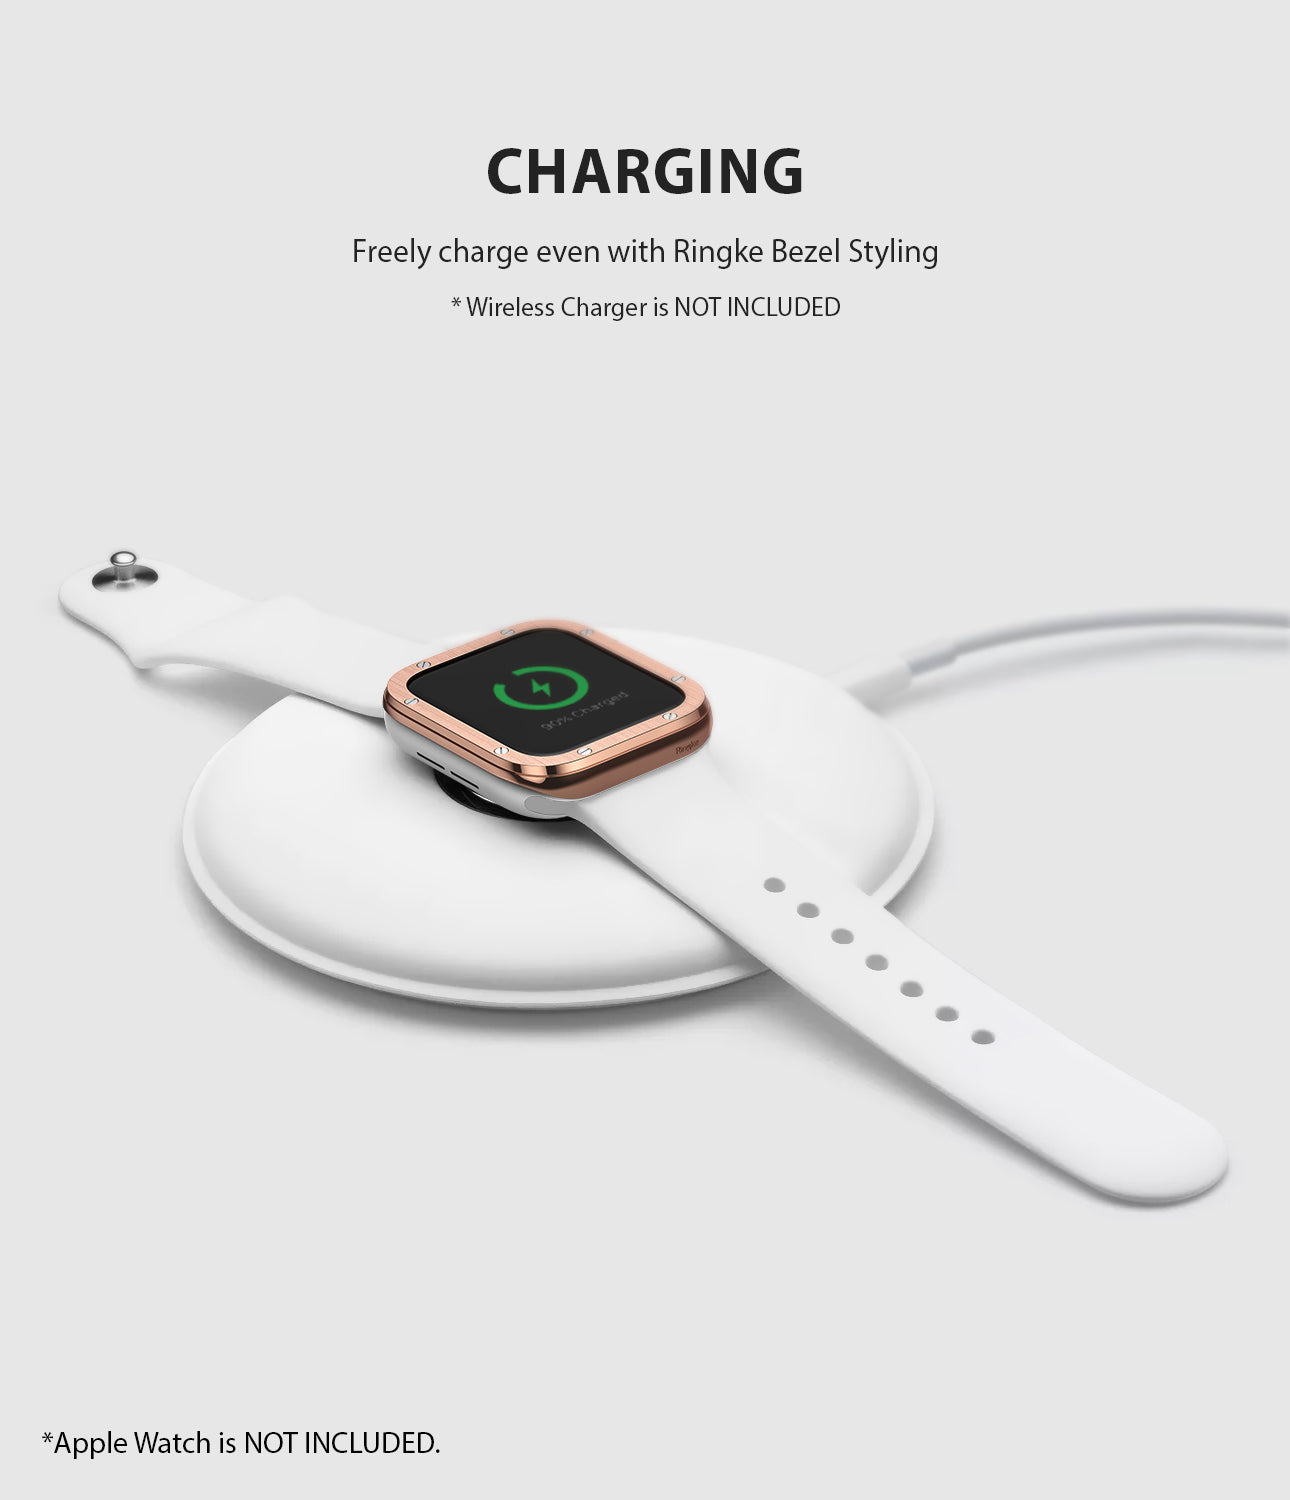 apple watch 3 2 1 38mm case ringke bezel styling stainless steel frame cover 38-41 wireless charging compatible